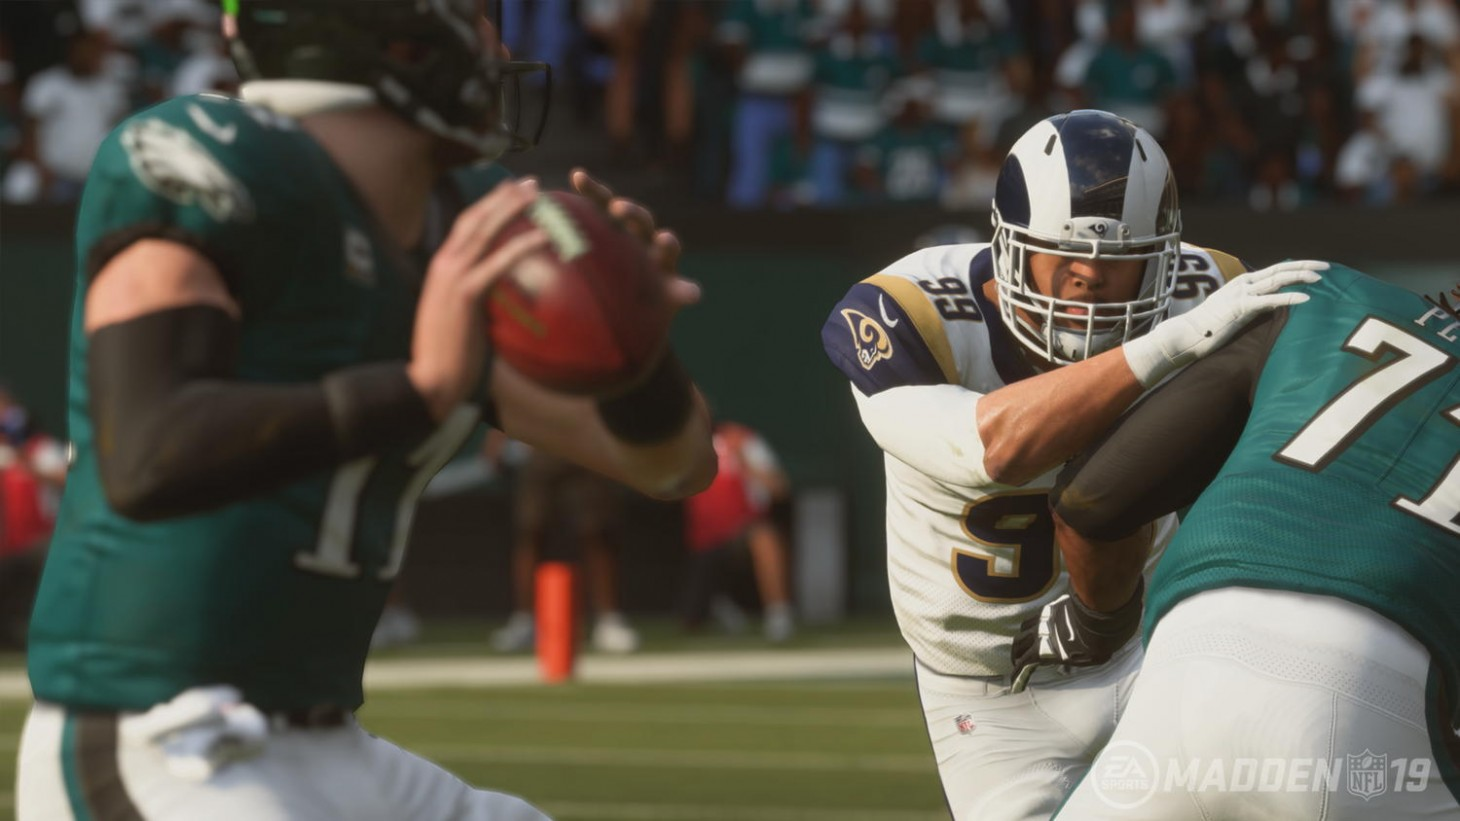 Finding The Right Fit For Your Franchise In Madden NFL 19 - Game